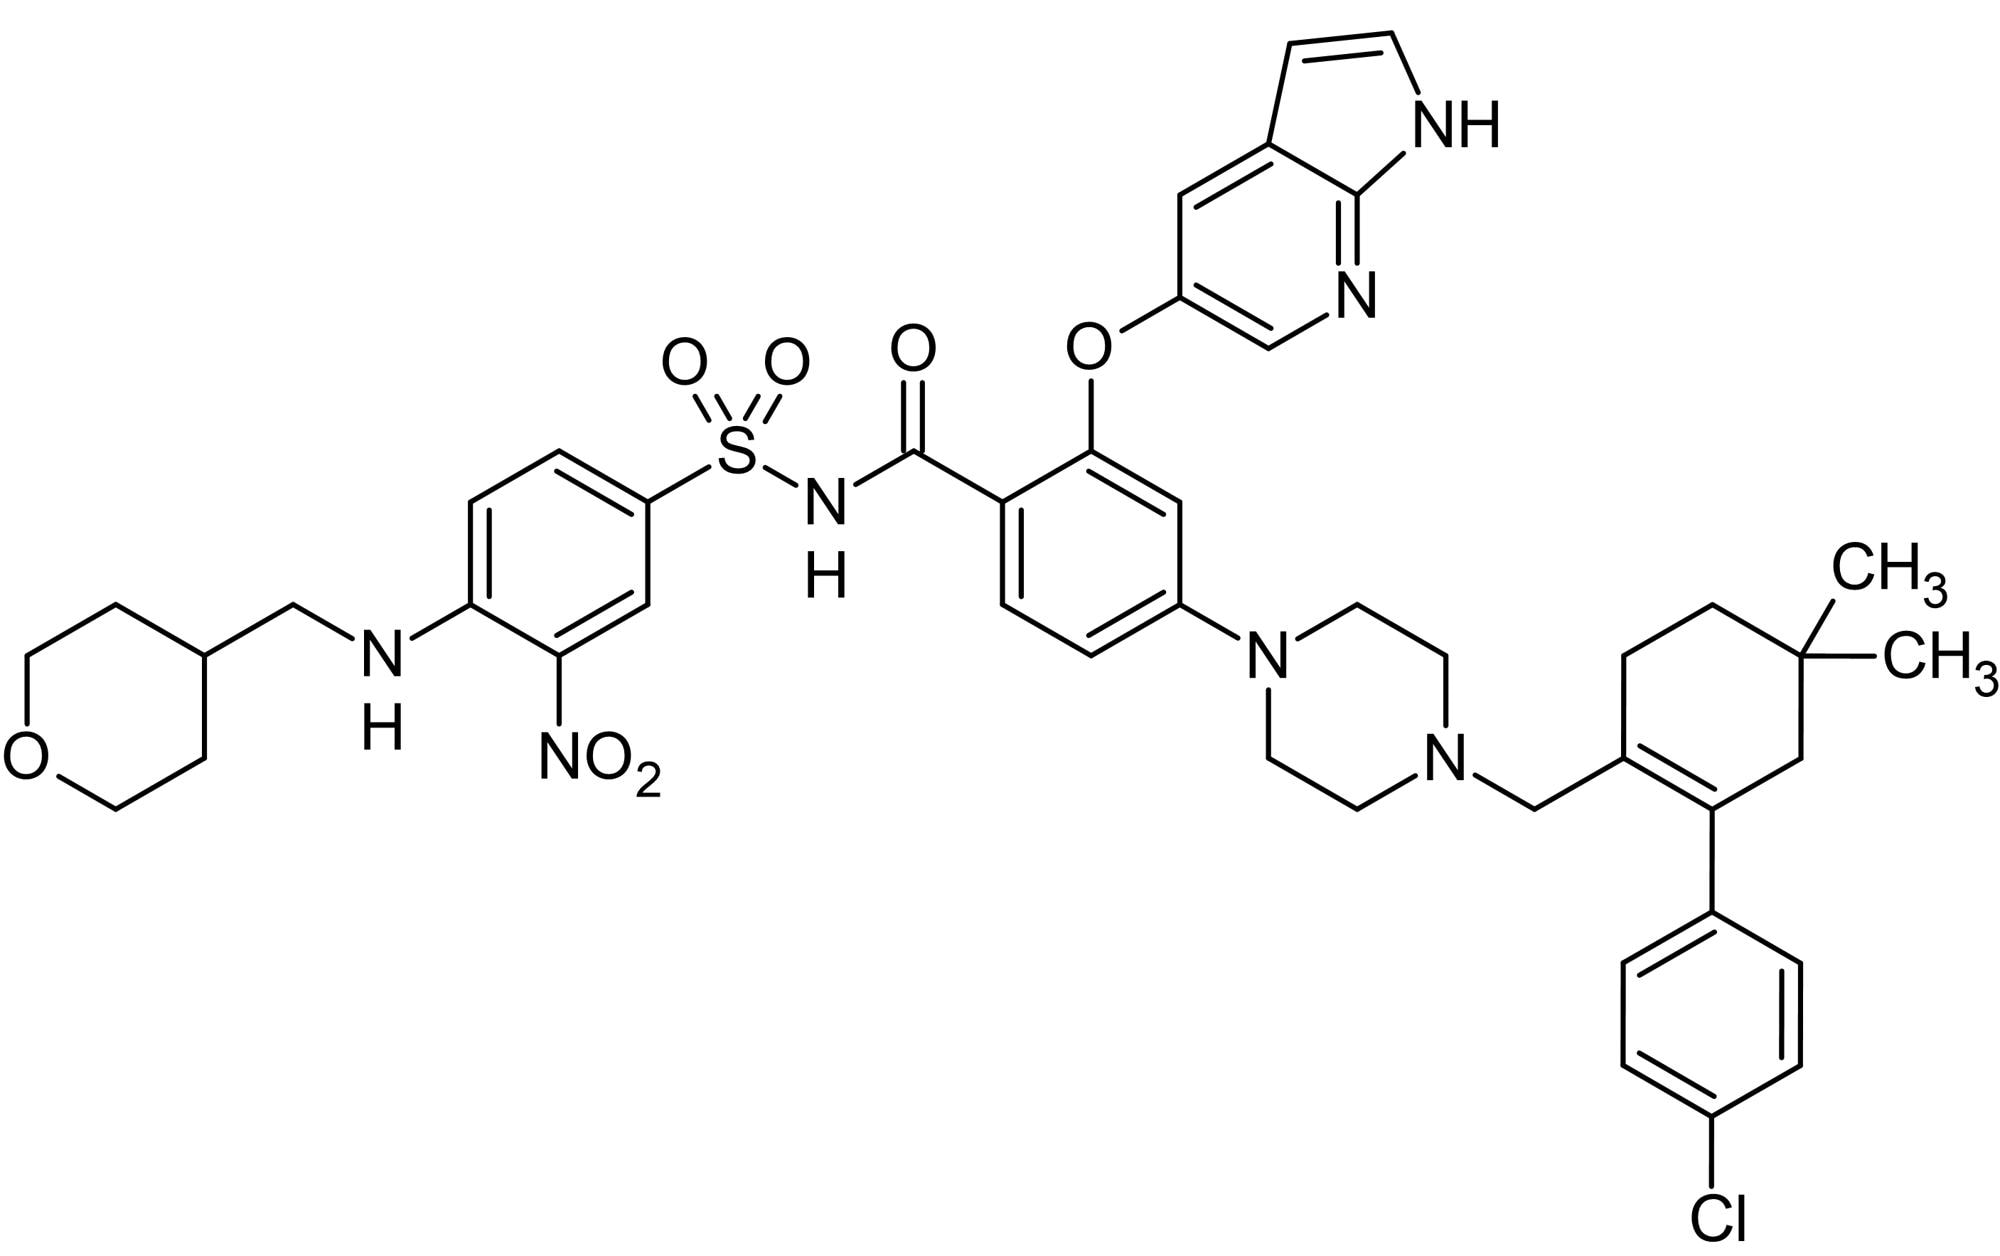 Chemical Structure - ABT-199 (Venetoclax), Bcl-2 inhibitor. (ab217298)